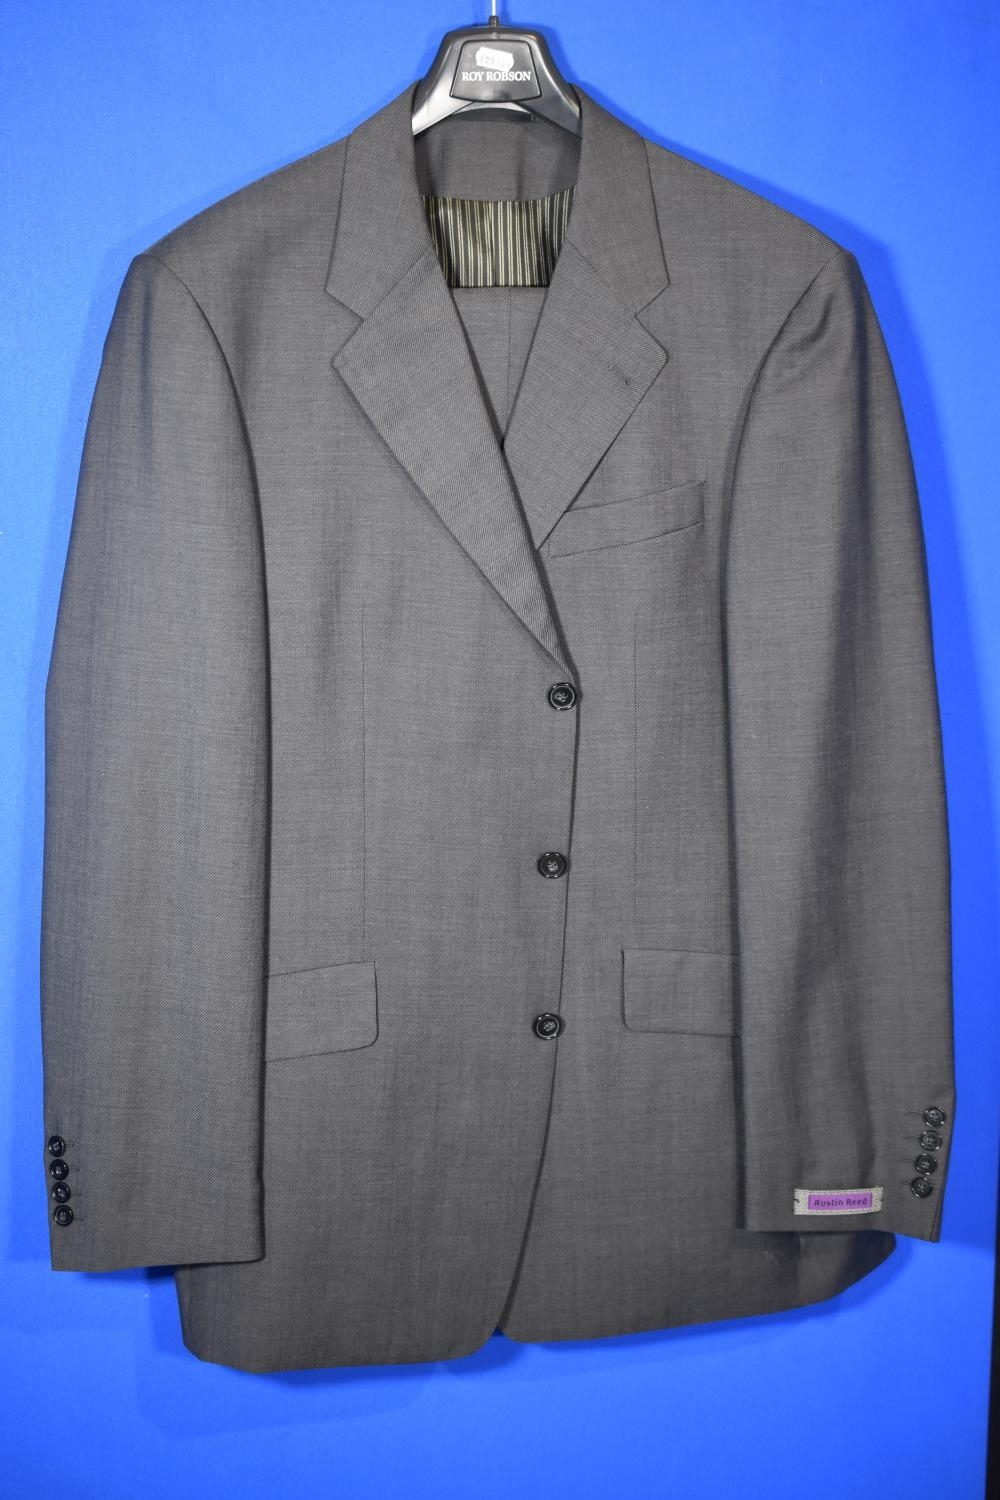 Grey Wool Austin Reed Made In Germany Jacket Is Approx 44 And Trousers Approx 36 Waist And 36 I